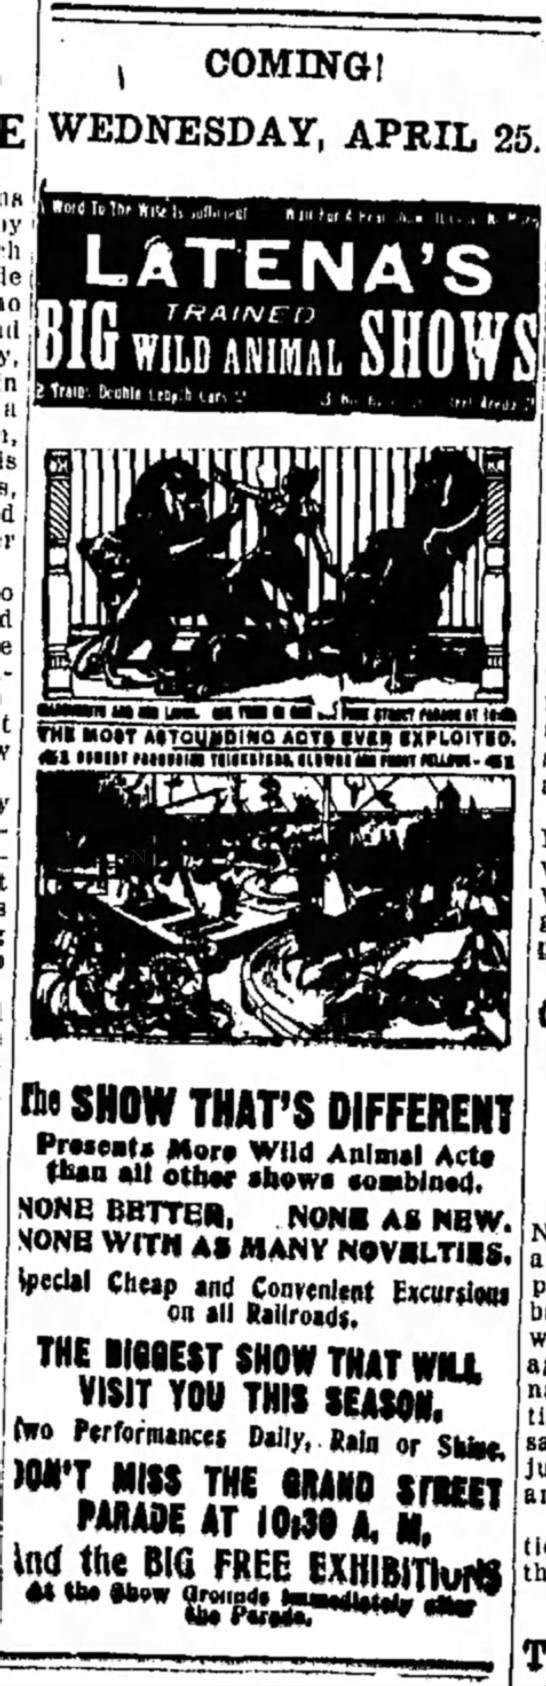 Downie LaTena Ad4-24-1917 See Related -